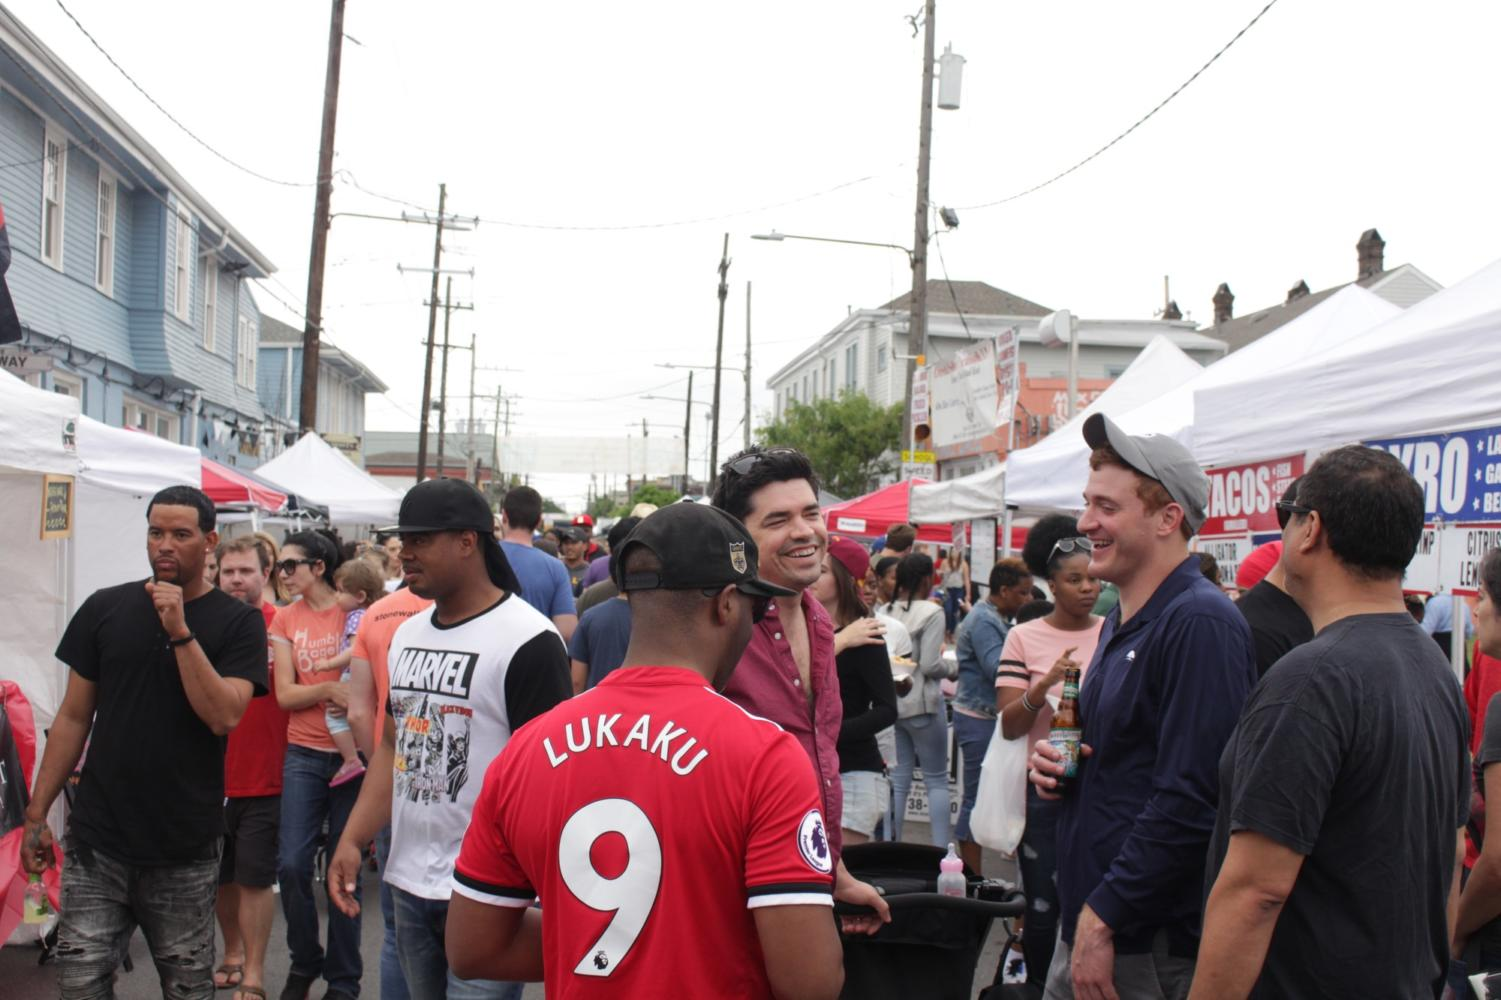 Freret Street kicks off festival season